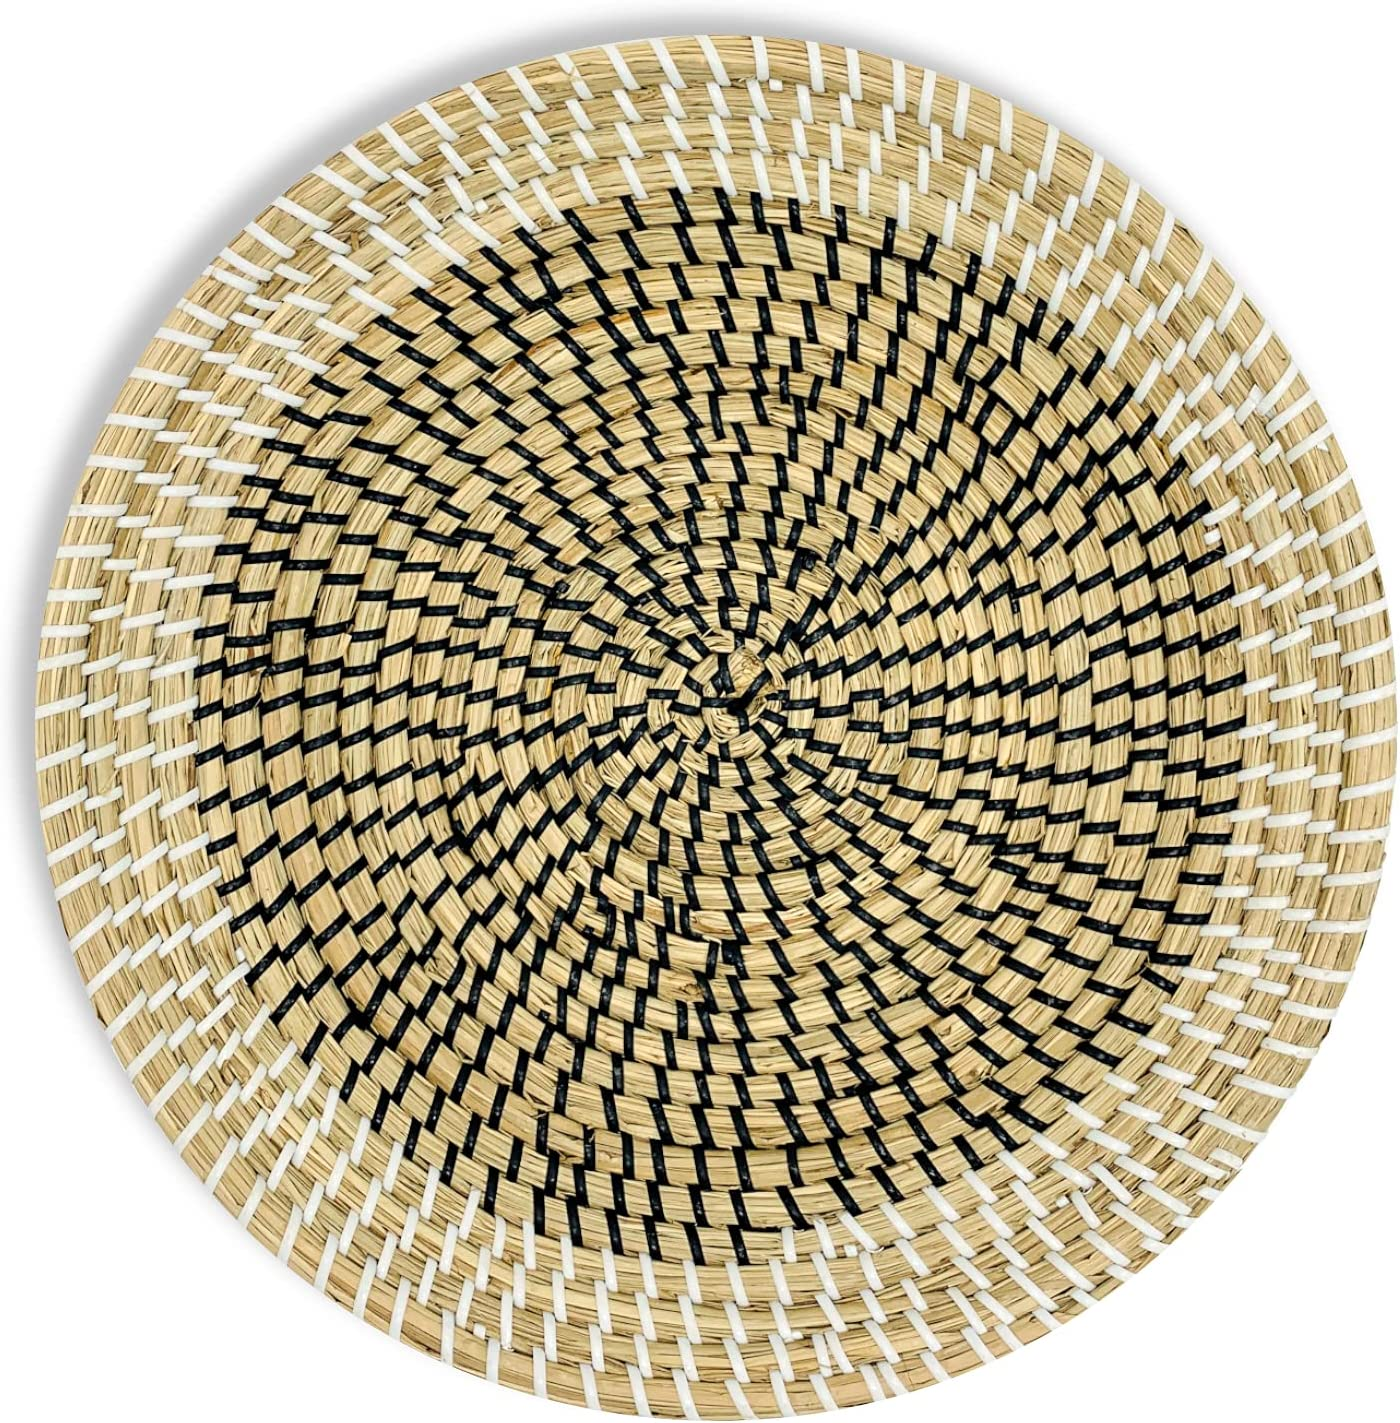 MARLIC Woven Wall Basket Decor - Seagrass Woven Basket Boho Decor for Home – Eclipse from Black and White Collection – Rustic Circular Hanging Tray for Mother's Day Gift